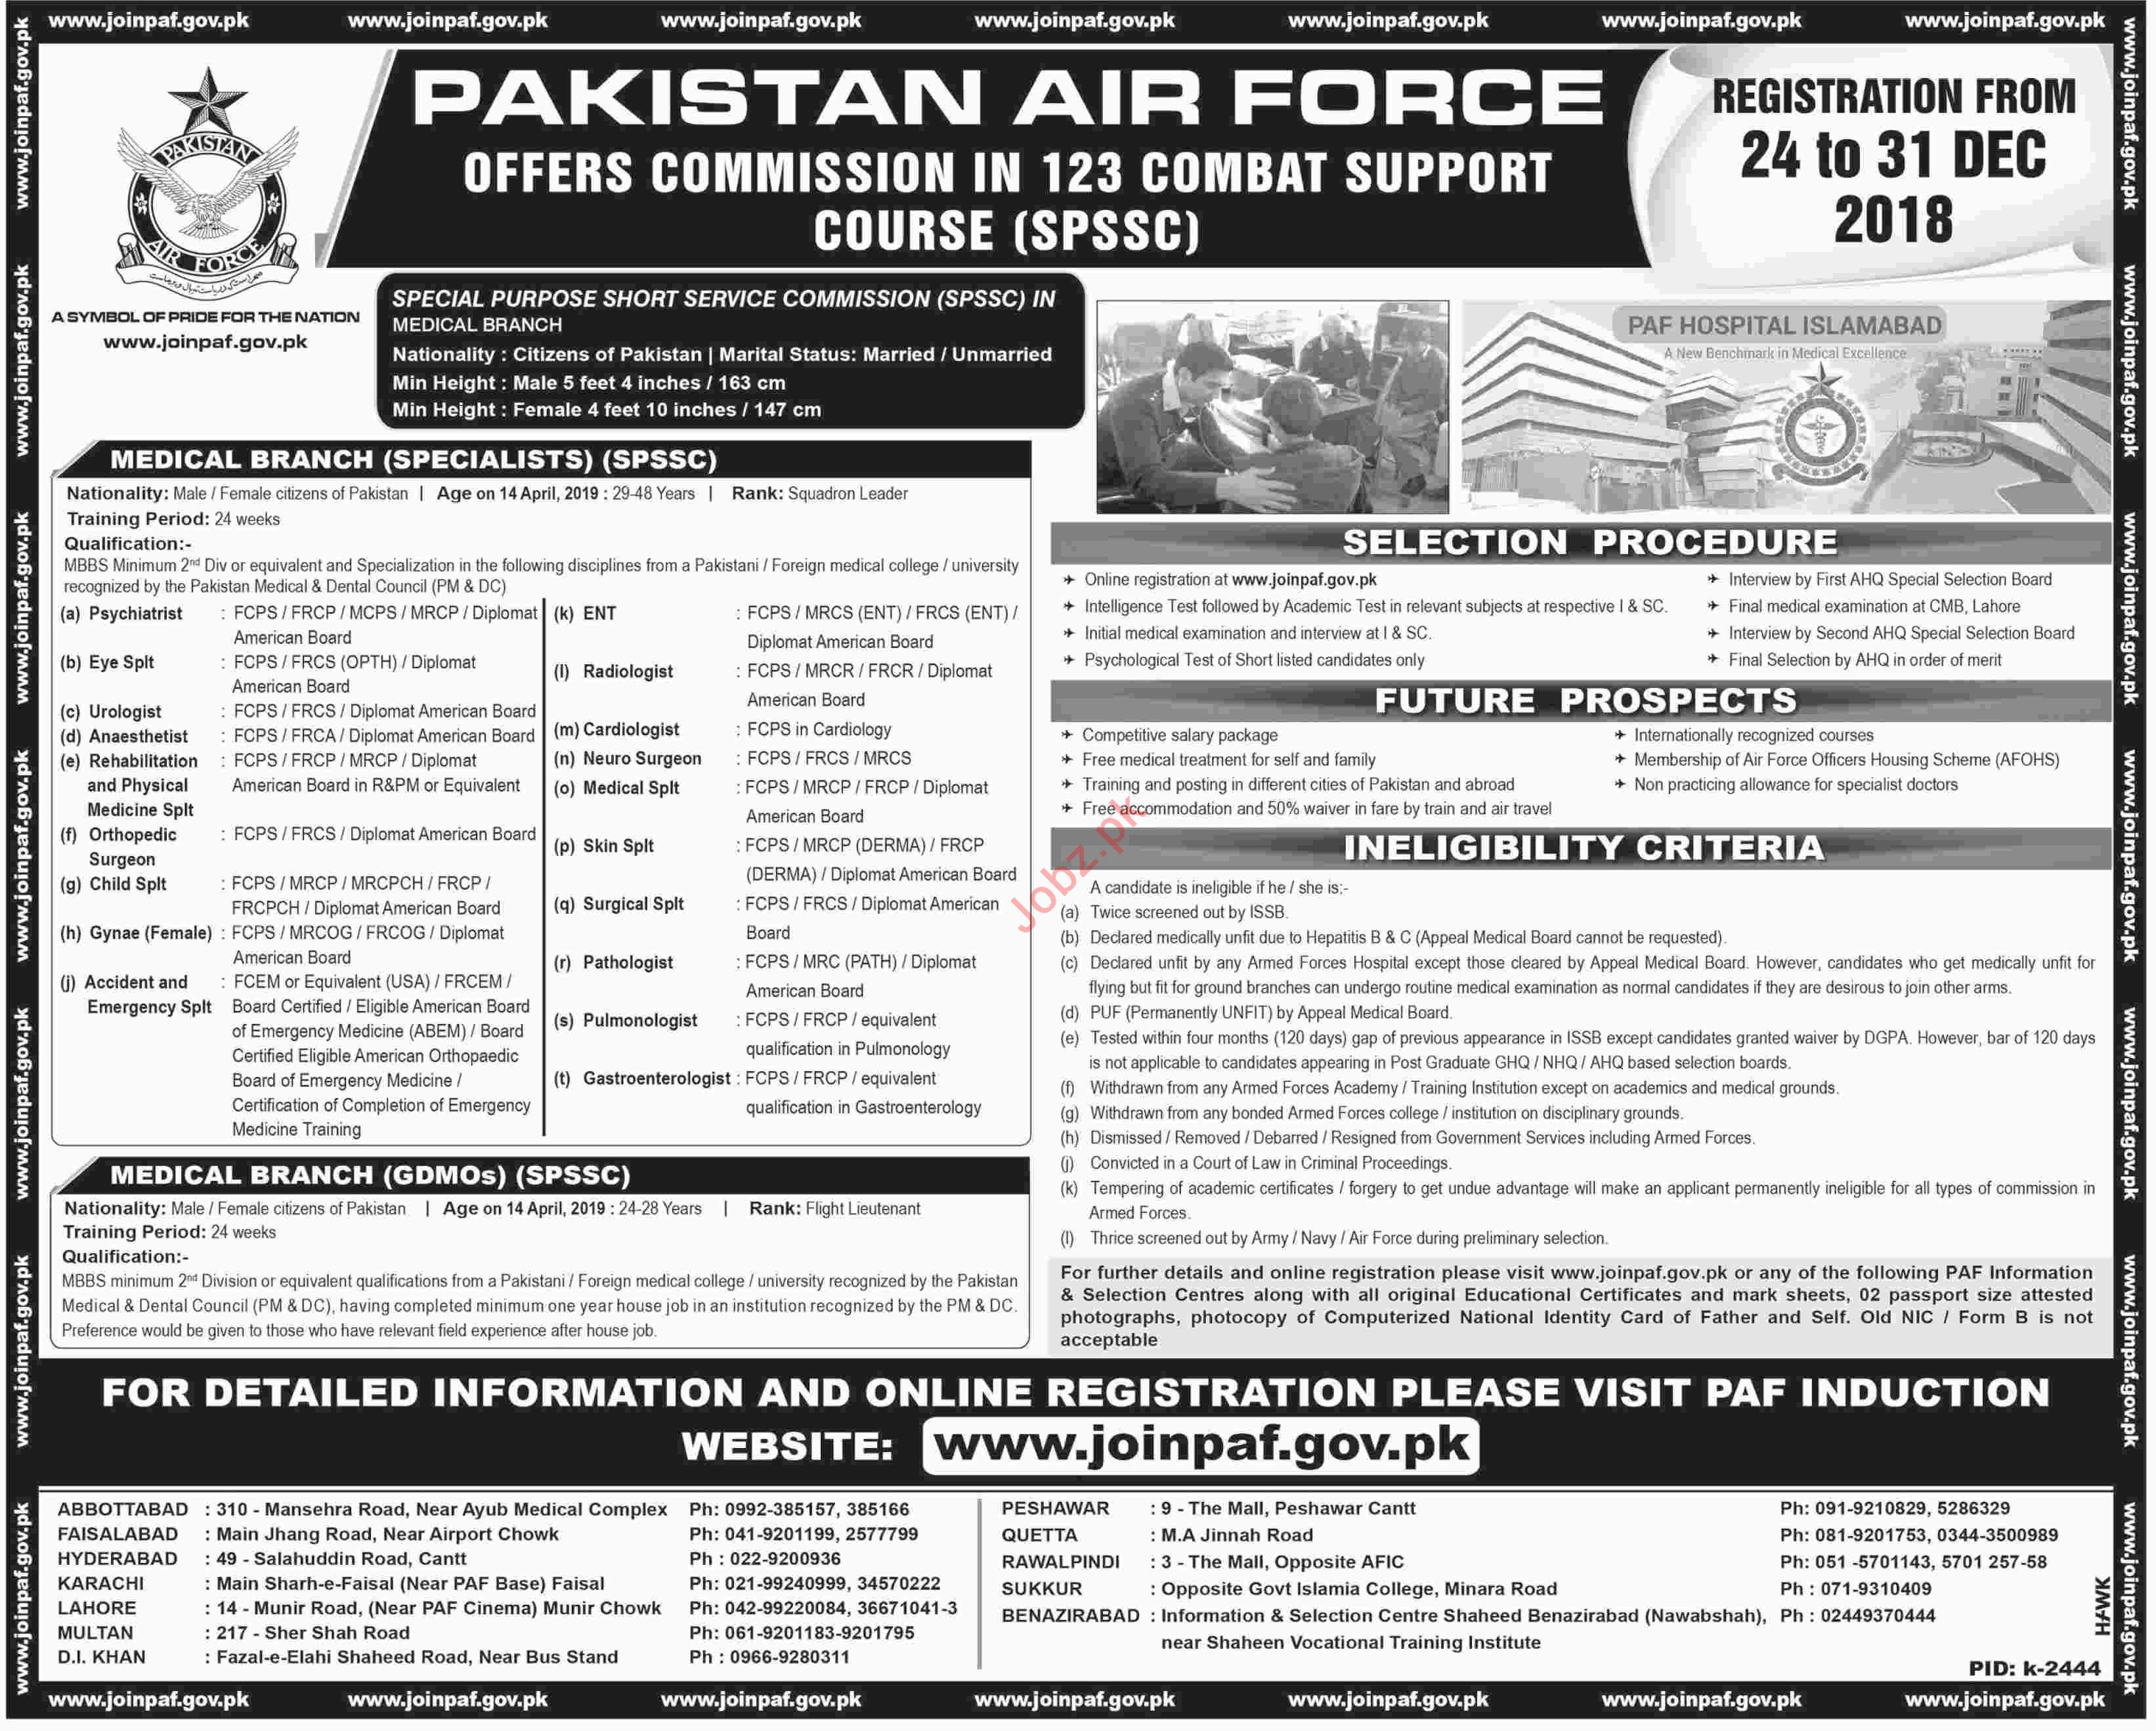 Join Pakistan Air Force as Commission 123 Combat Course